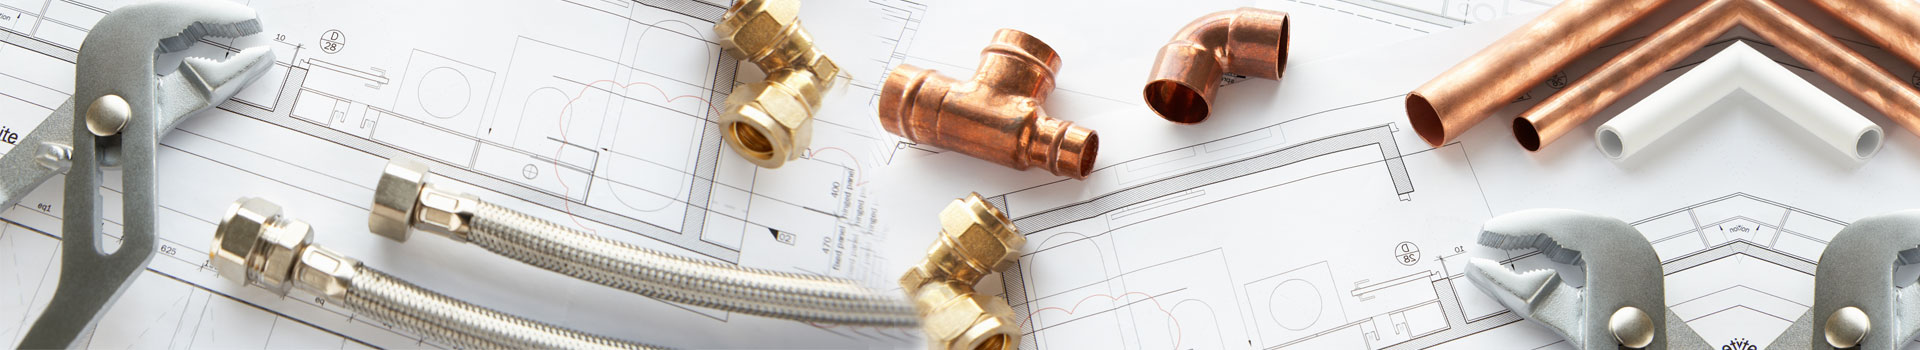 Get the professional plumbing service with Plumbers of Abbotsford